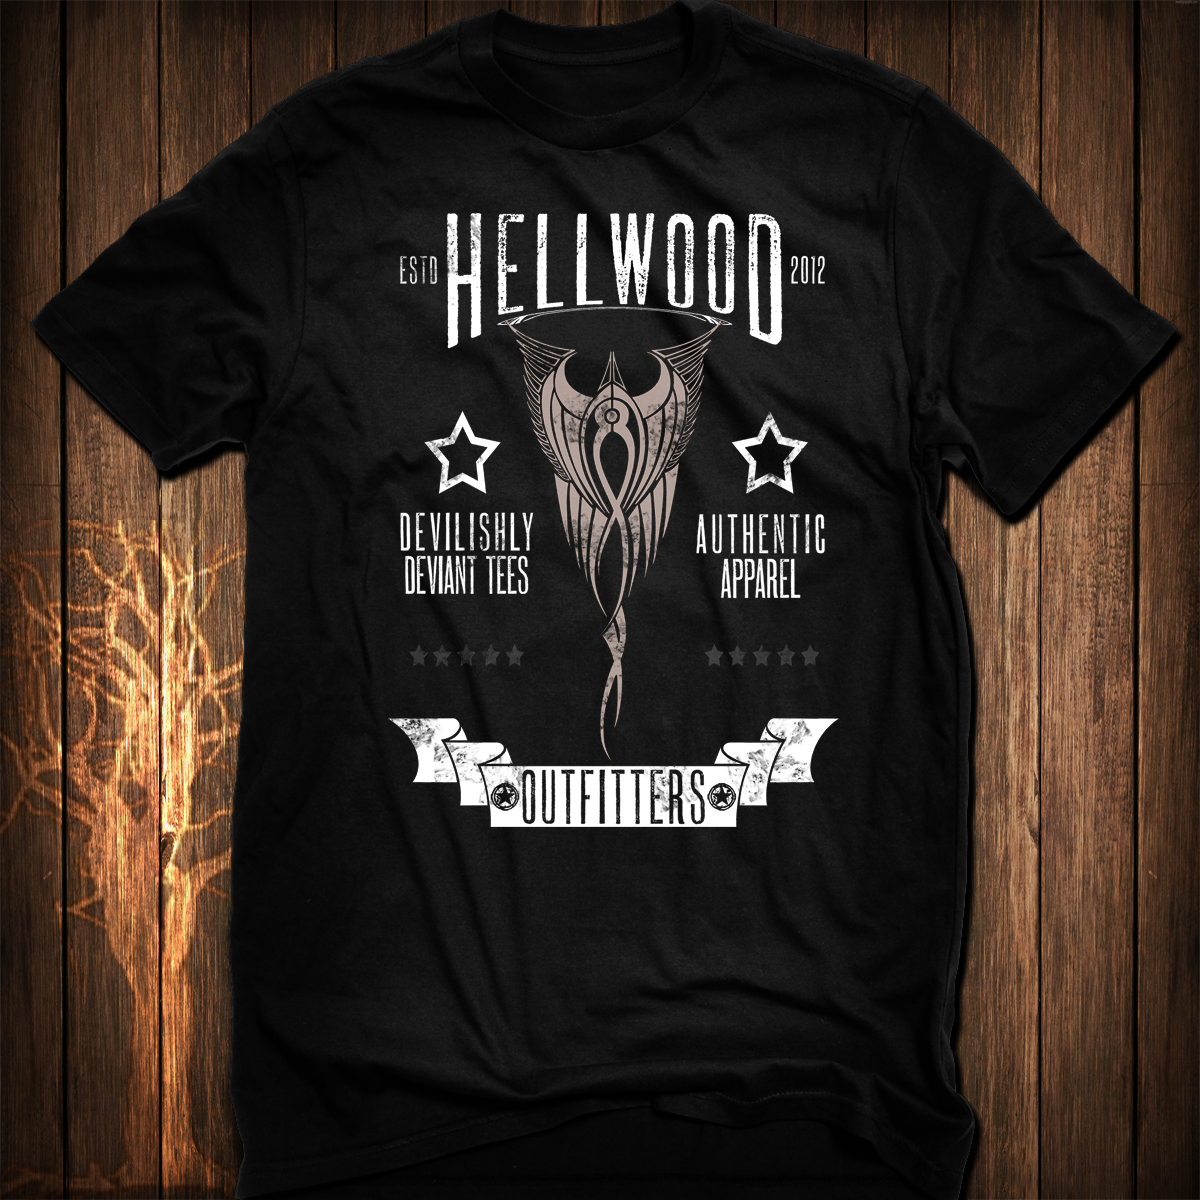 Authentic Hellwood Brand T-Shirt